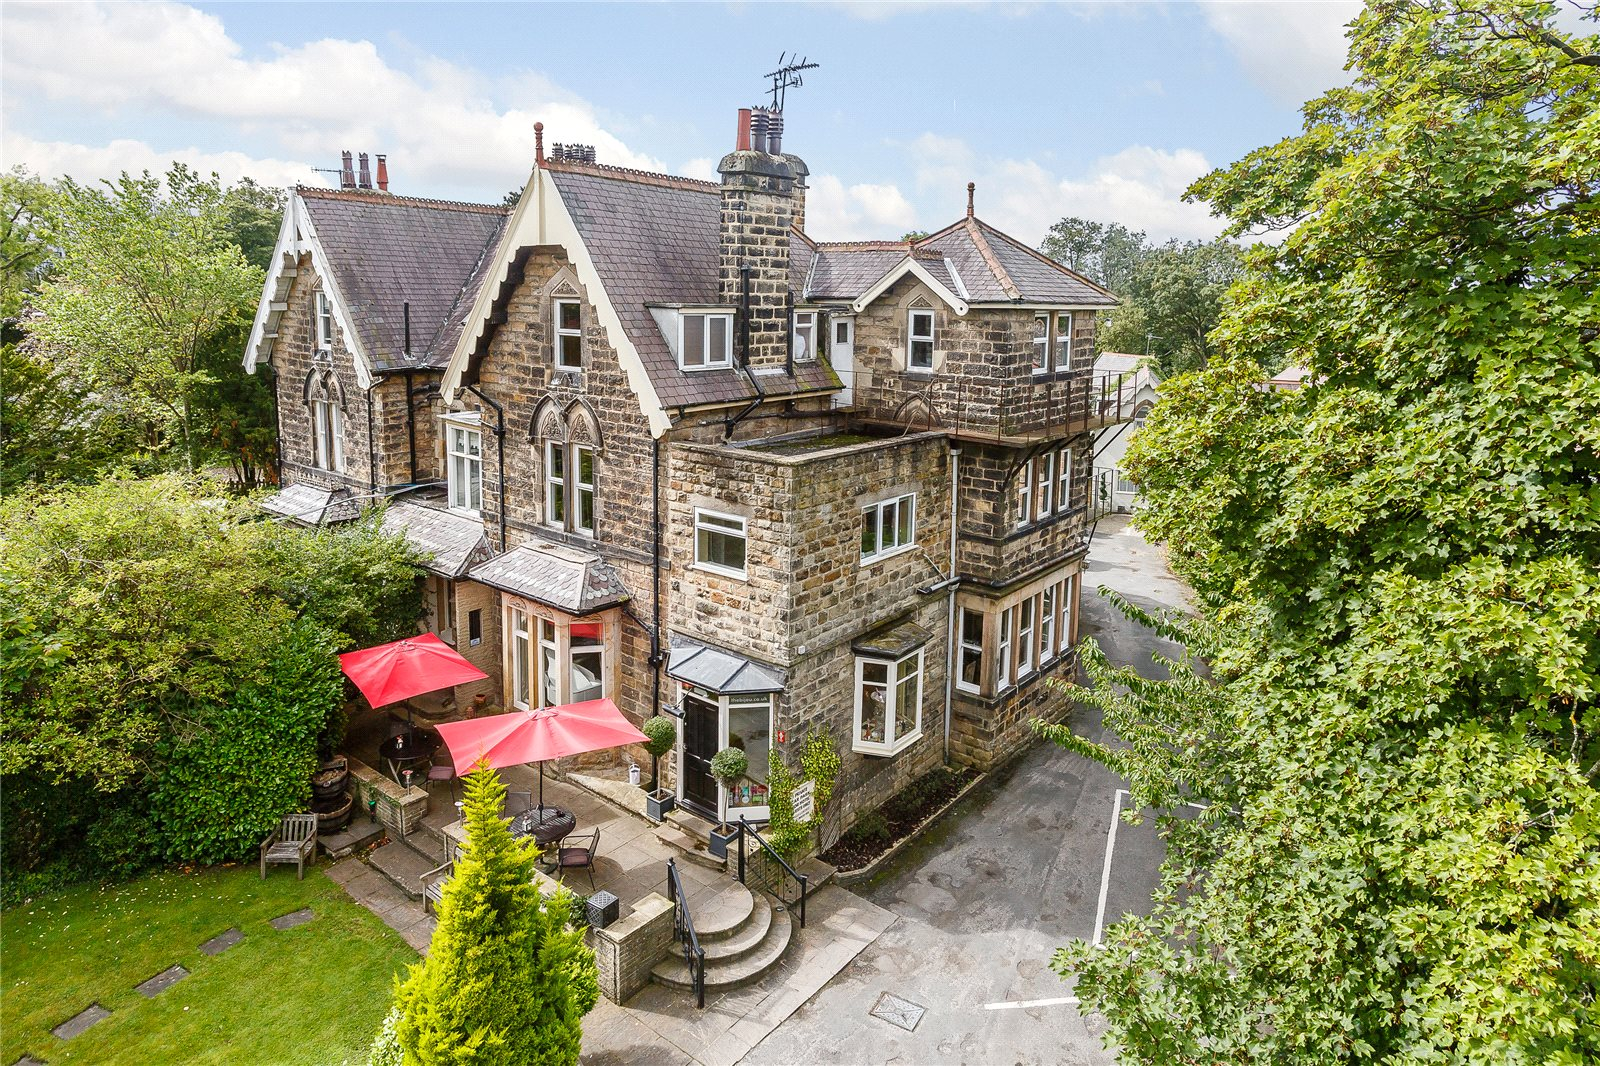 Moradia para Venda às Ripon Road, Harrogate, North Yorkshire, HG1 Harrogate, Inglaterra